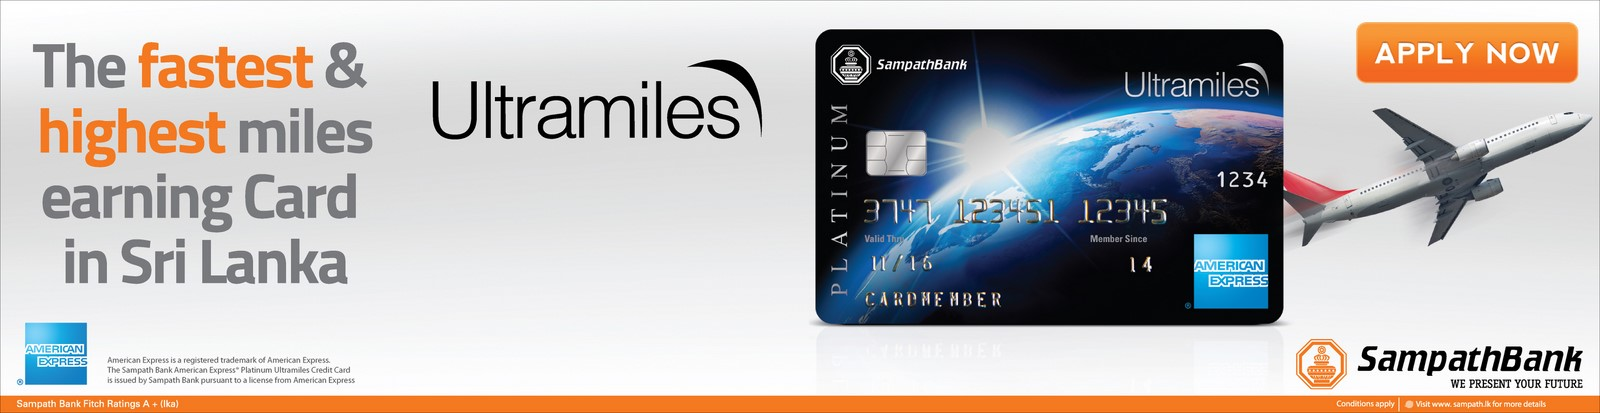 Sampath Bank Platinum Ultramiles Credit Card